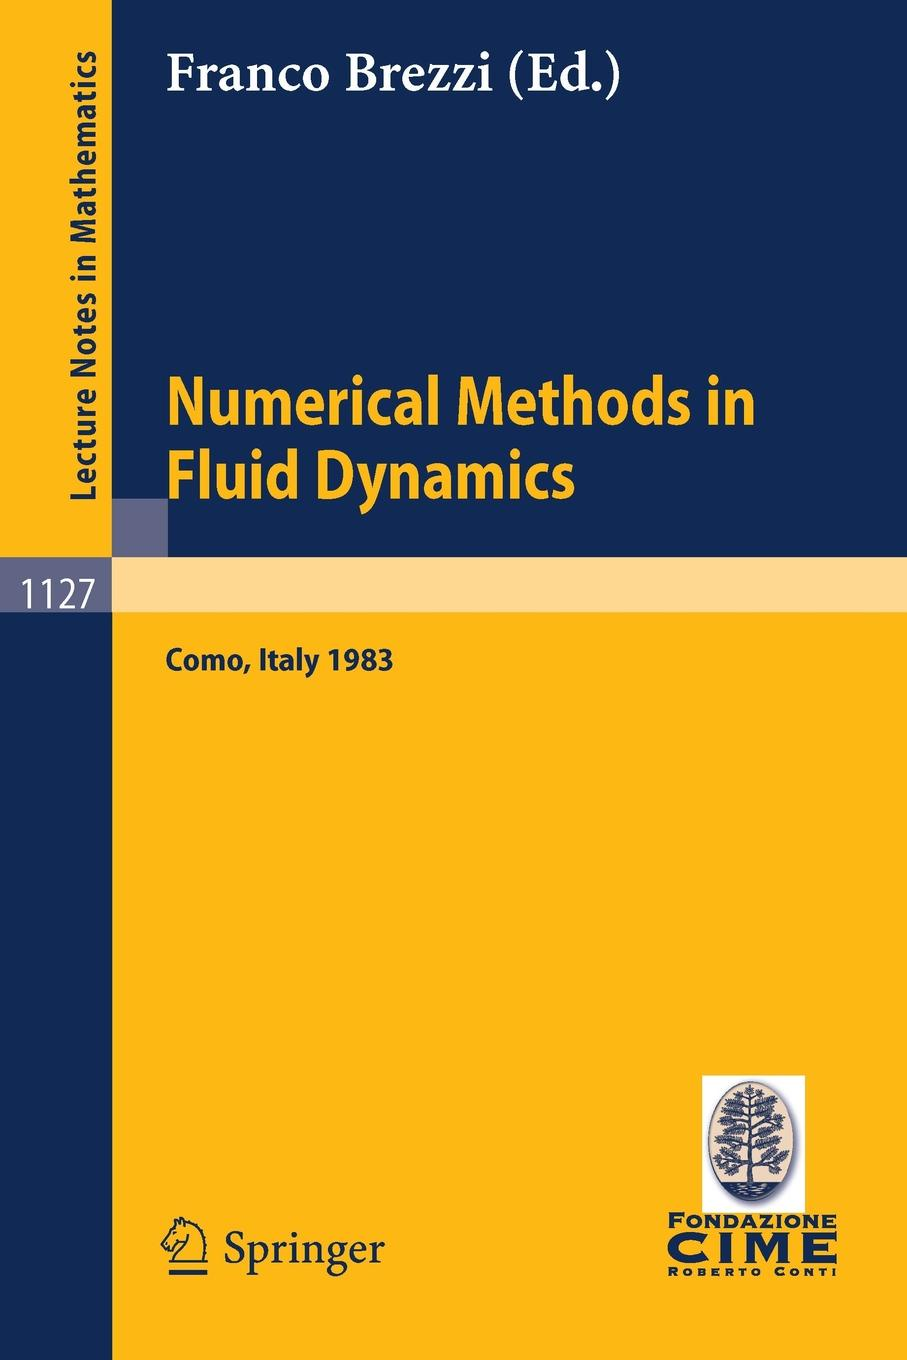 Numerical Methods in Fluid Dynamics. Lectures given at the 3rd 1983 Session of the Centro Internationale Matematico Estivo (CIME) held at Como, Italy, July 7-15, 1983 недорго, оригинальная цена